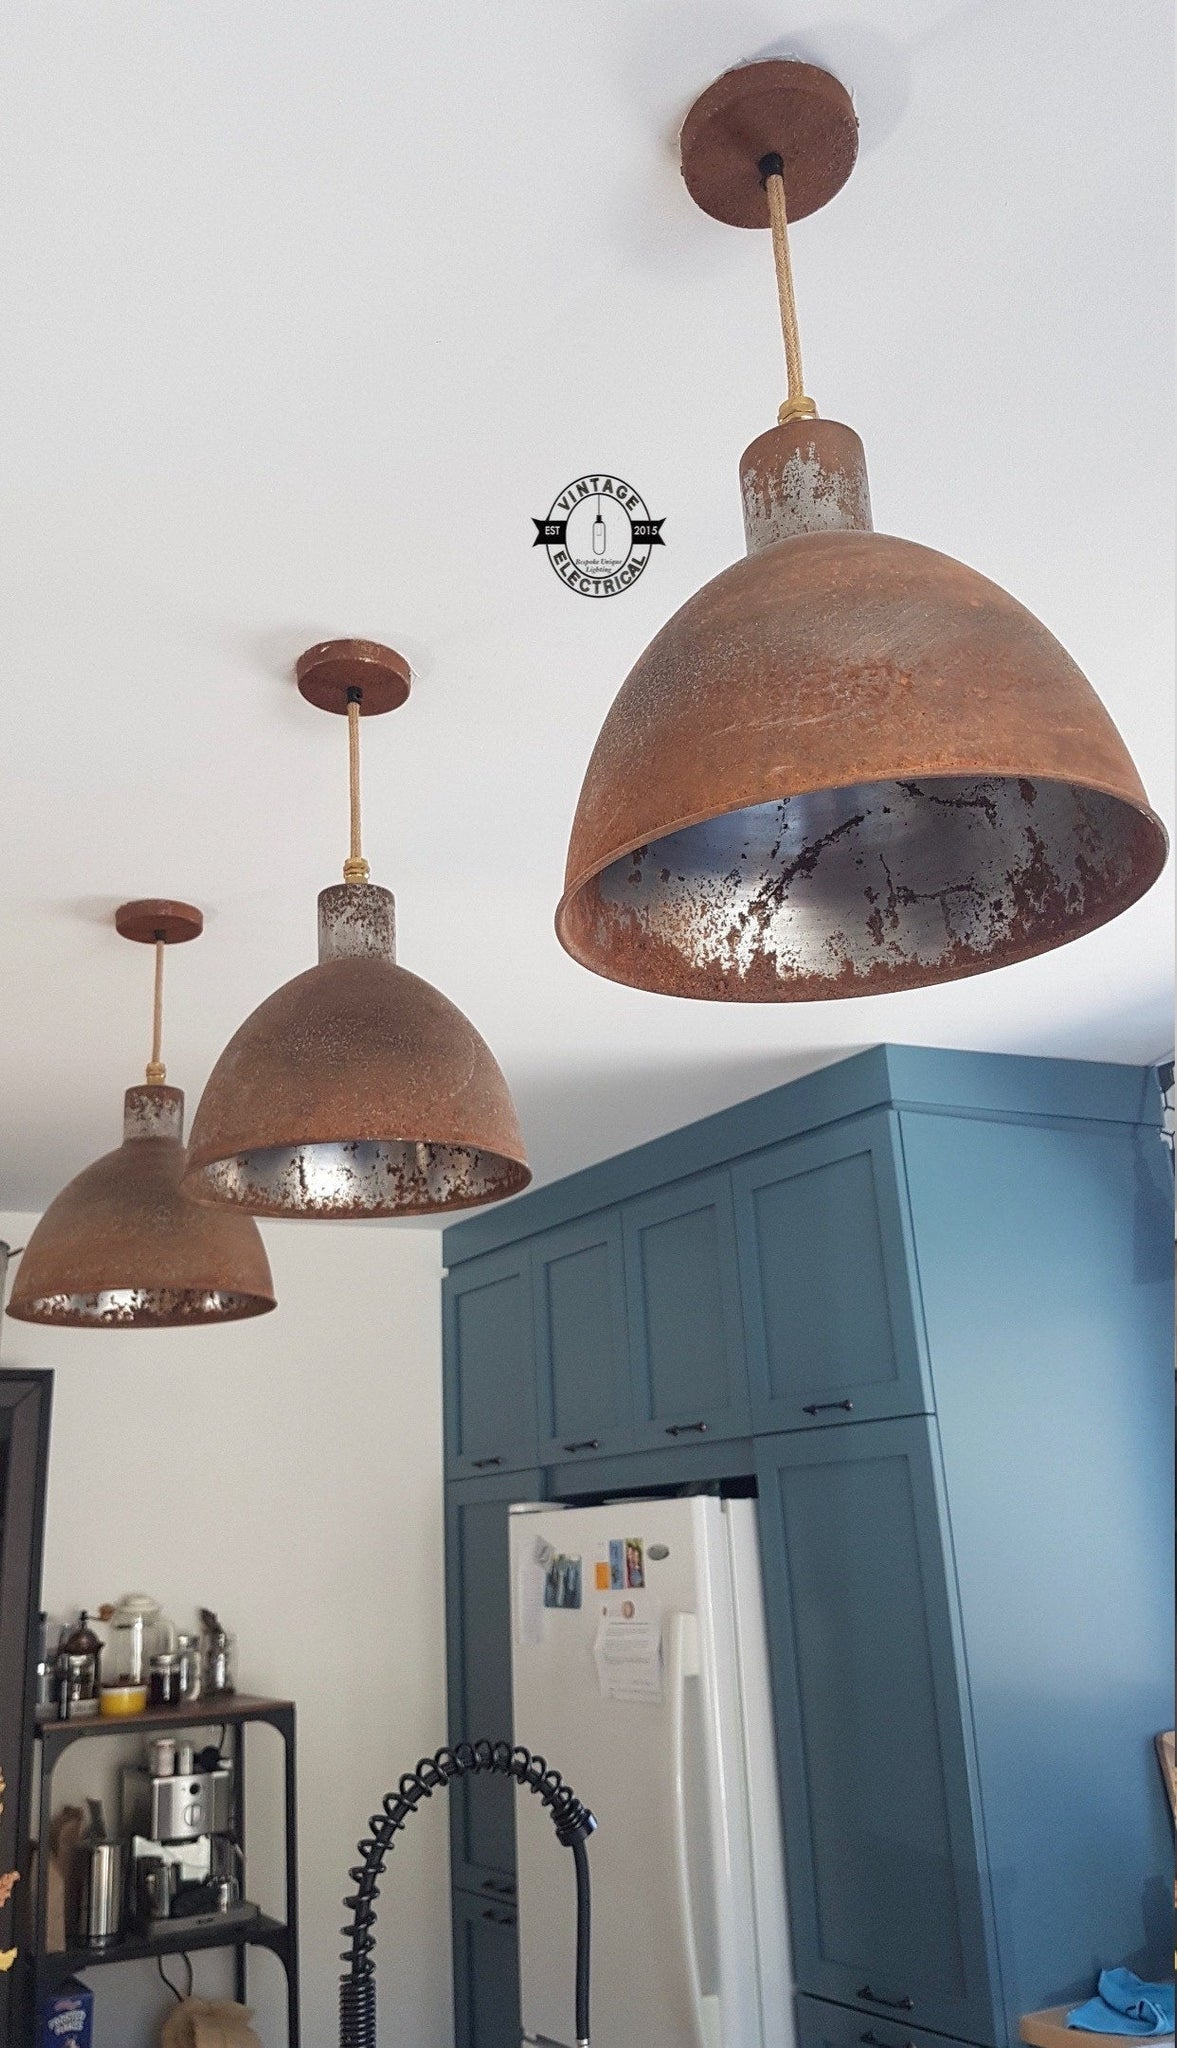 Warham ~ Rusted Solid Steel Industrial Shade Pendant Set Light | Ceiling Dining Room | Kitchen Table | Vintage 1 x Edison Filament Bulb